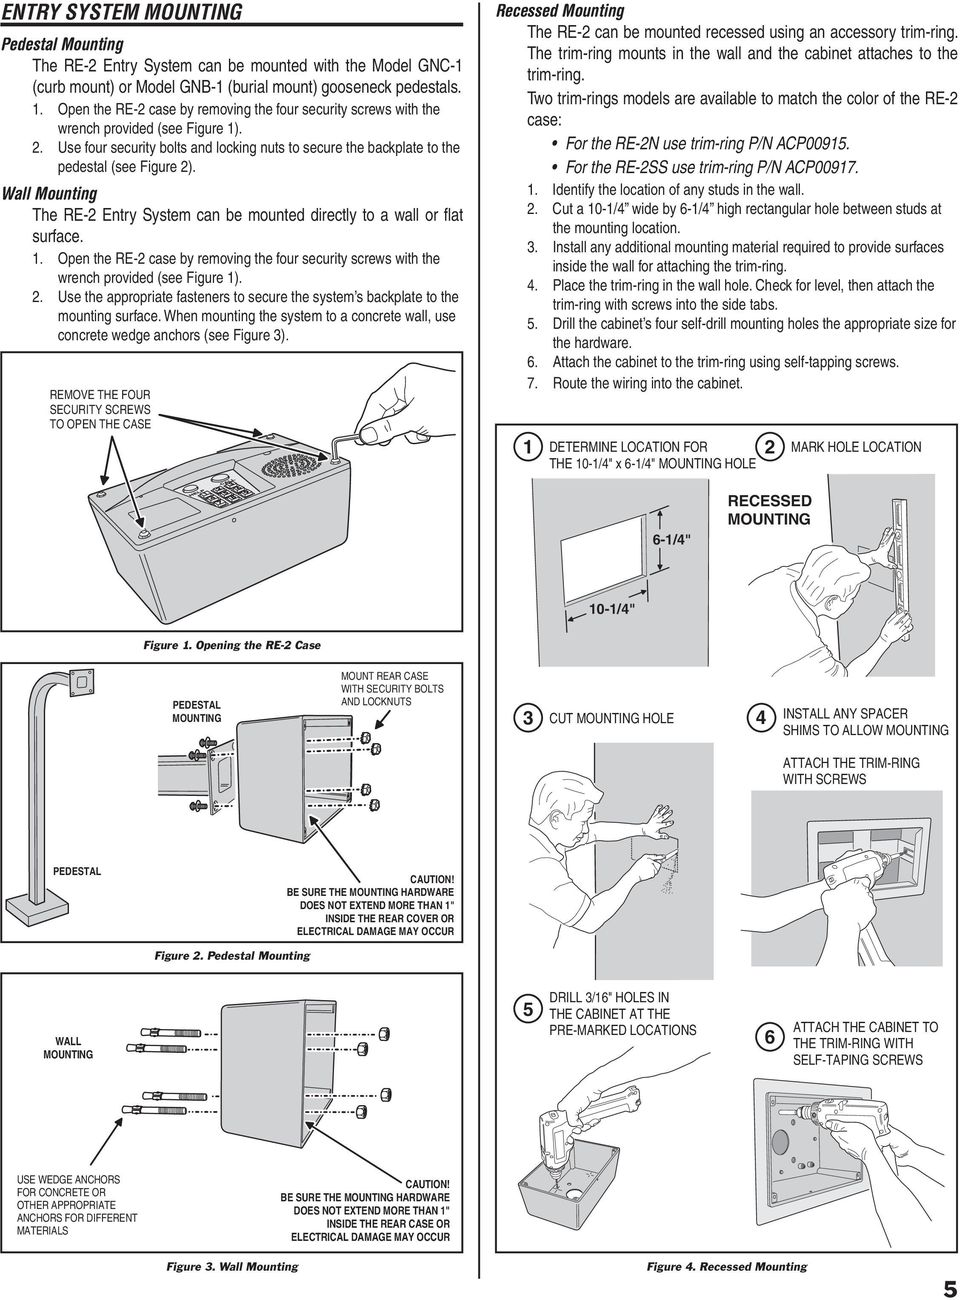 Wall Mounting The Entry System can be mounted directly to a wall or fl at surface. 1. Open the case by removing the four security screws with the wrench provided (see Figure 1). 2.